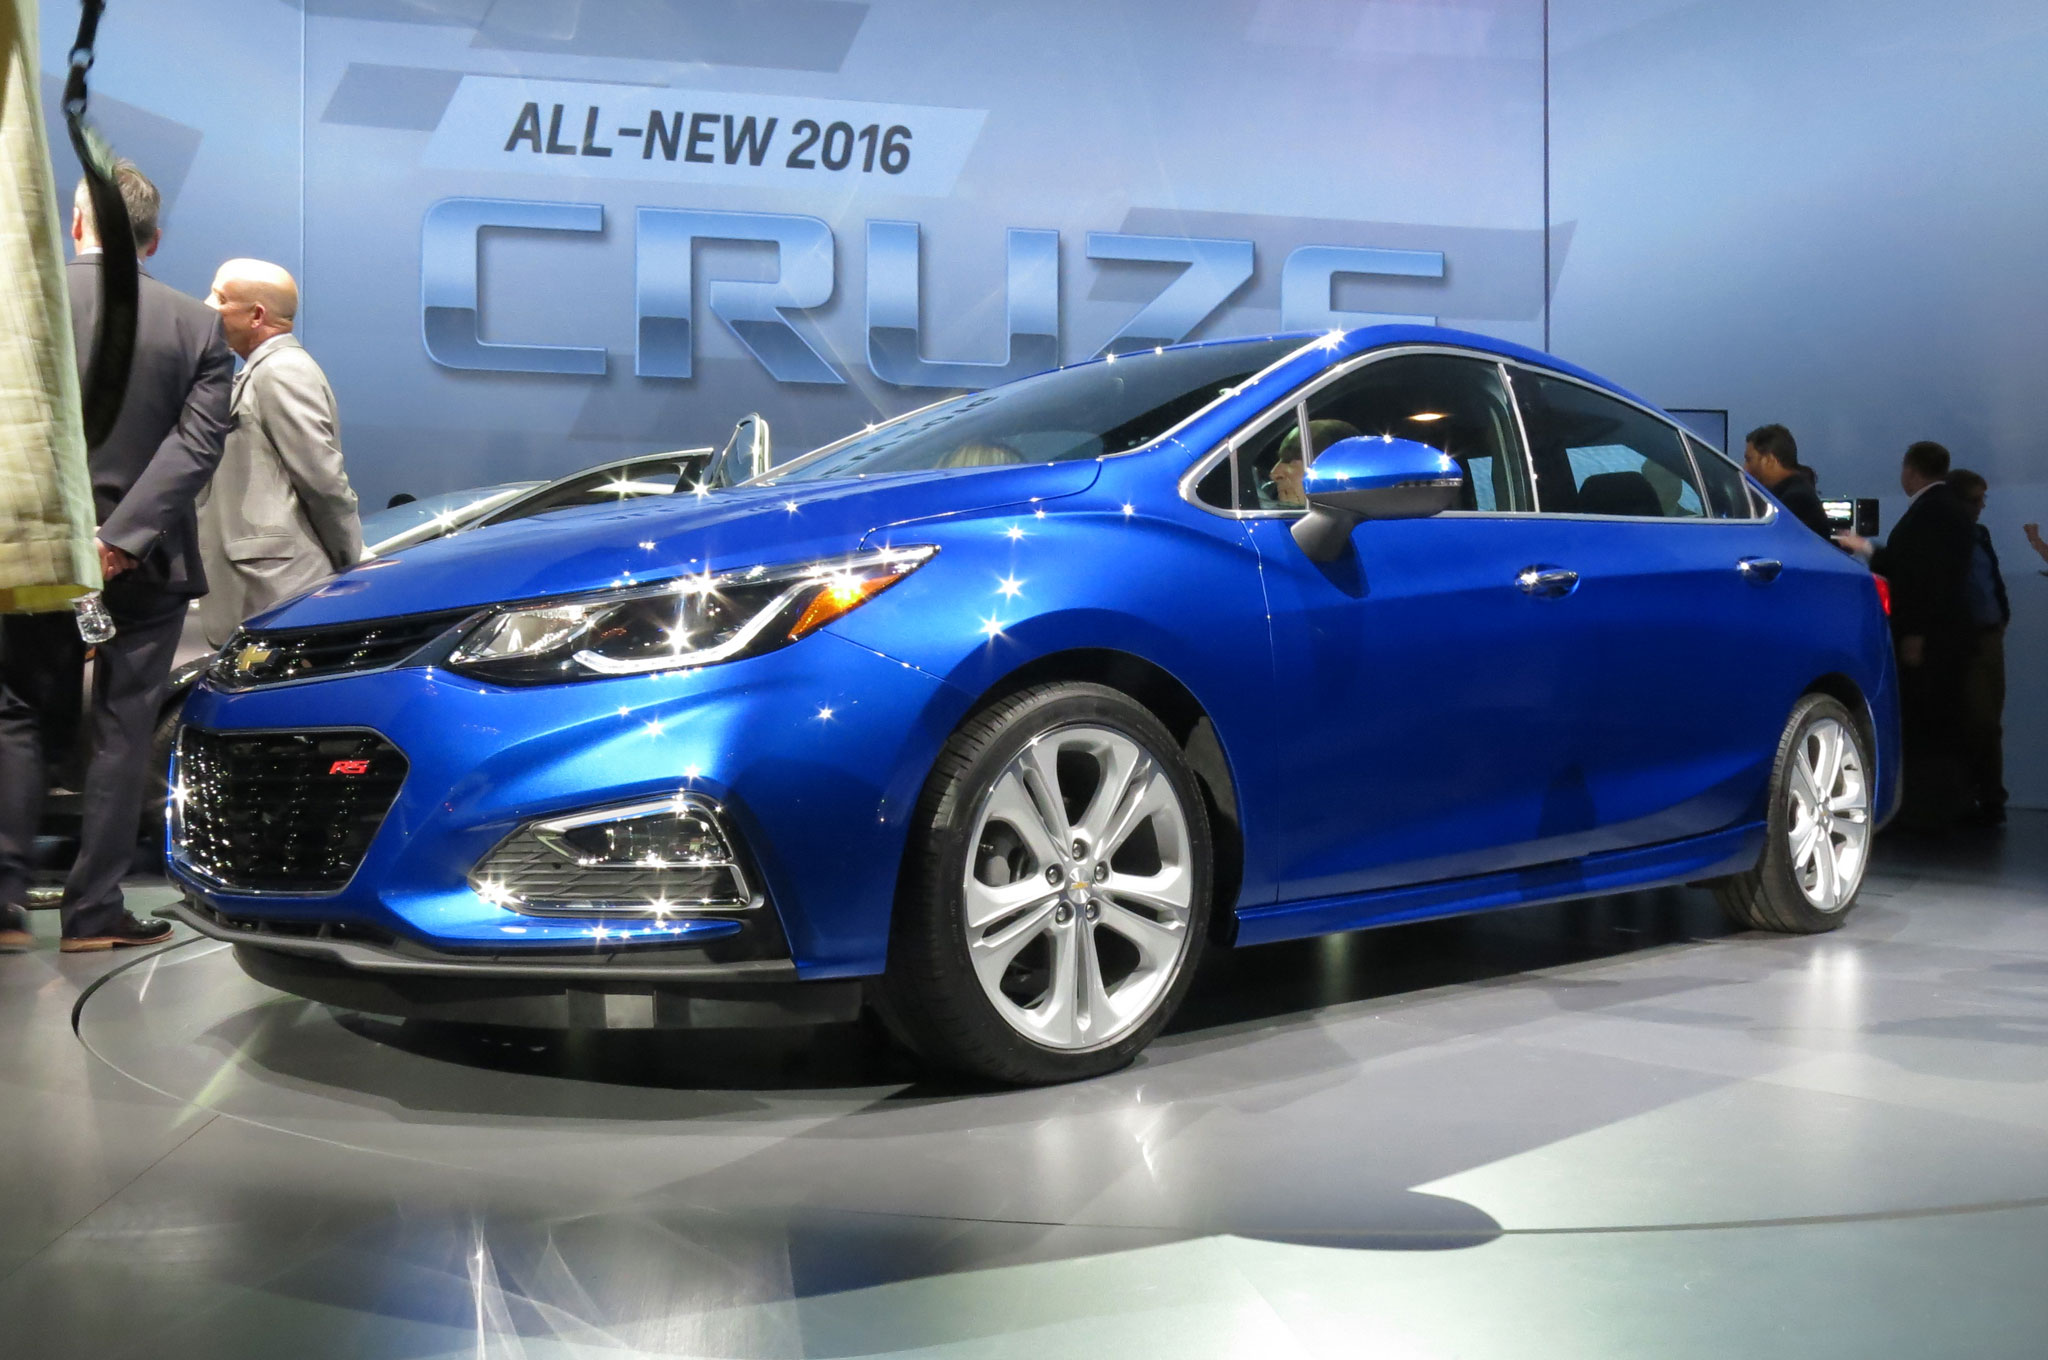 Chief Engineer Most 2016 Chevrolet Cruze Models to 40 MPG Hwy